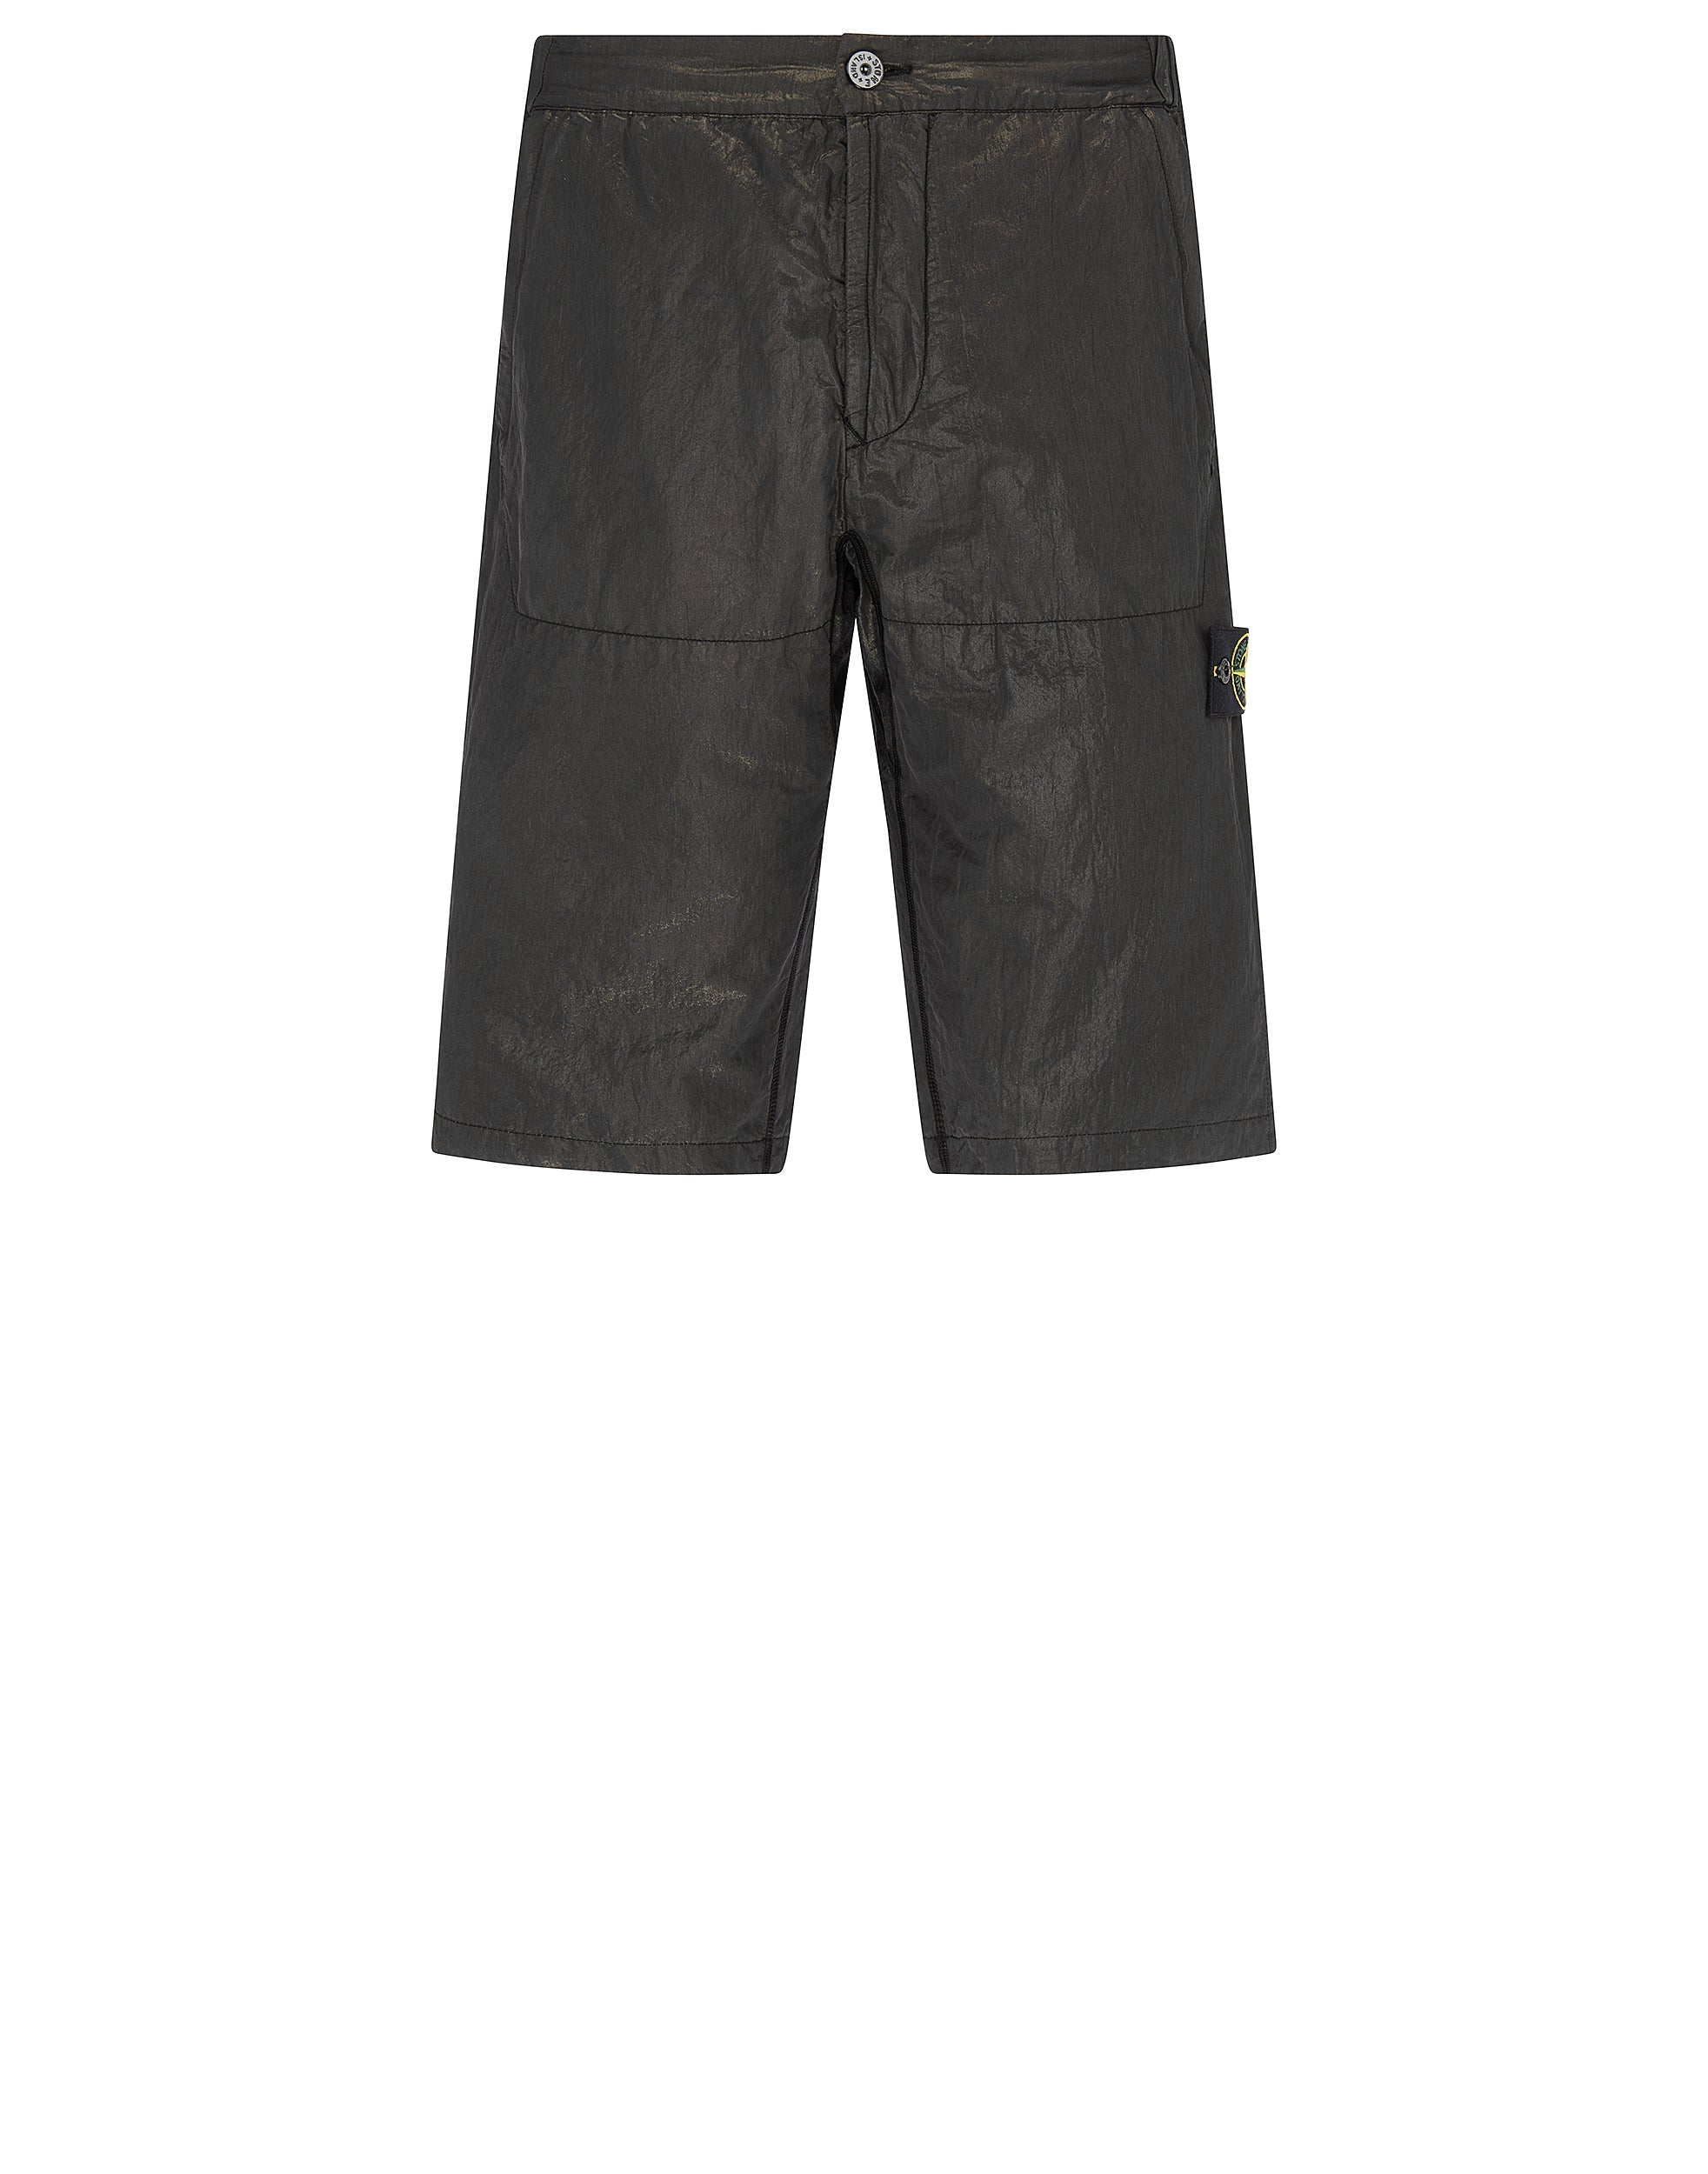 L0111 COTTON METAL Shorts in Black